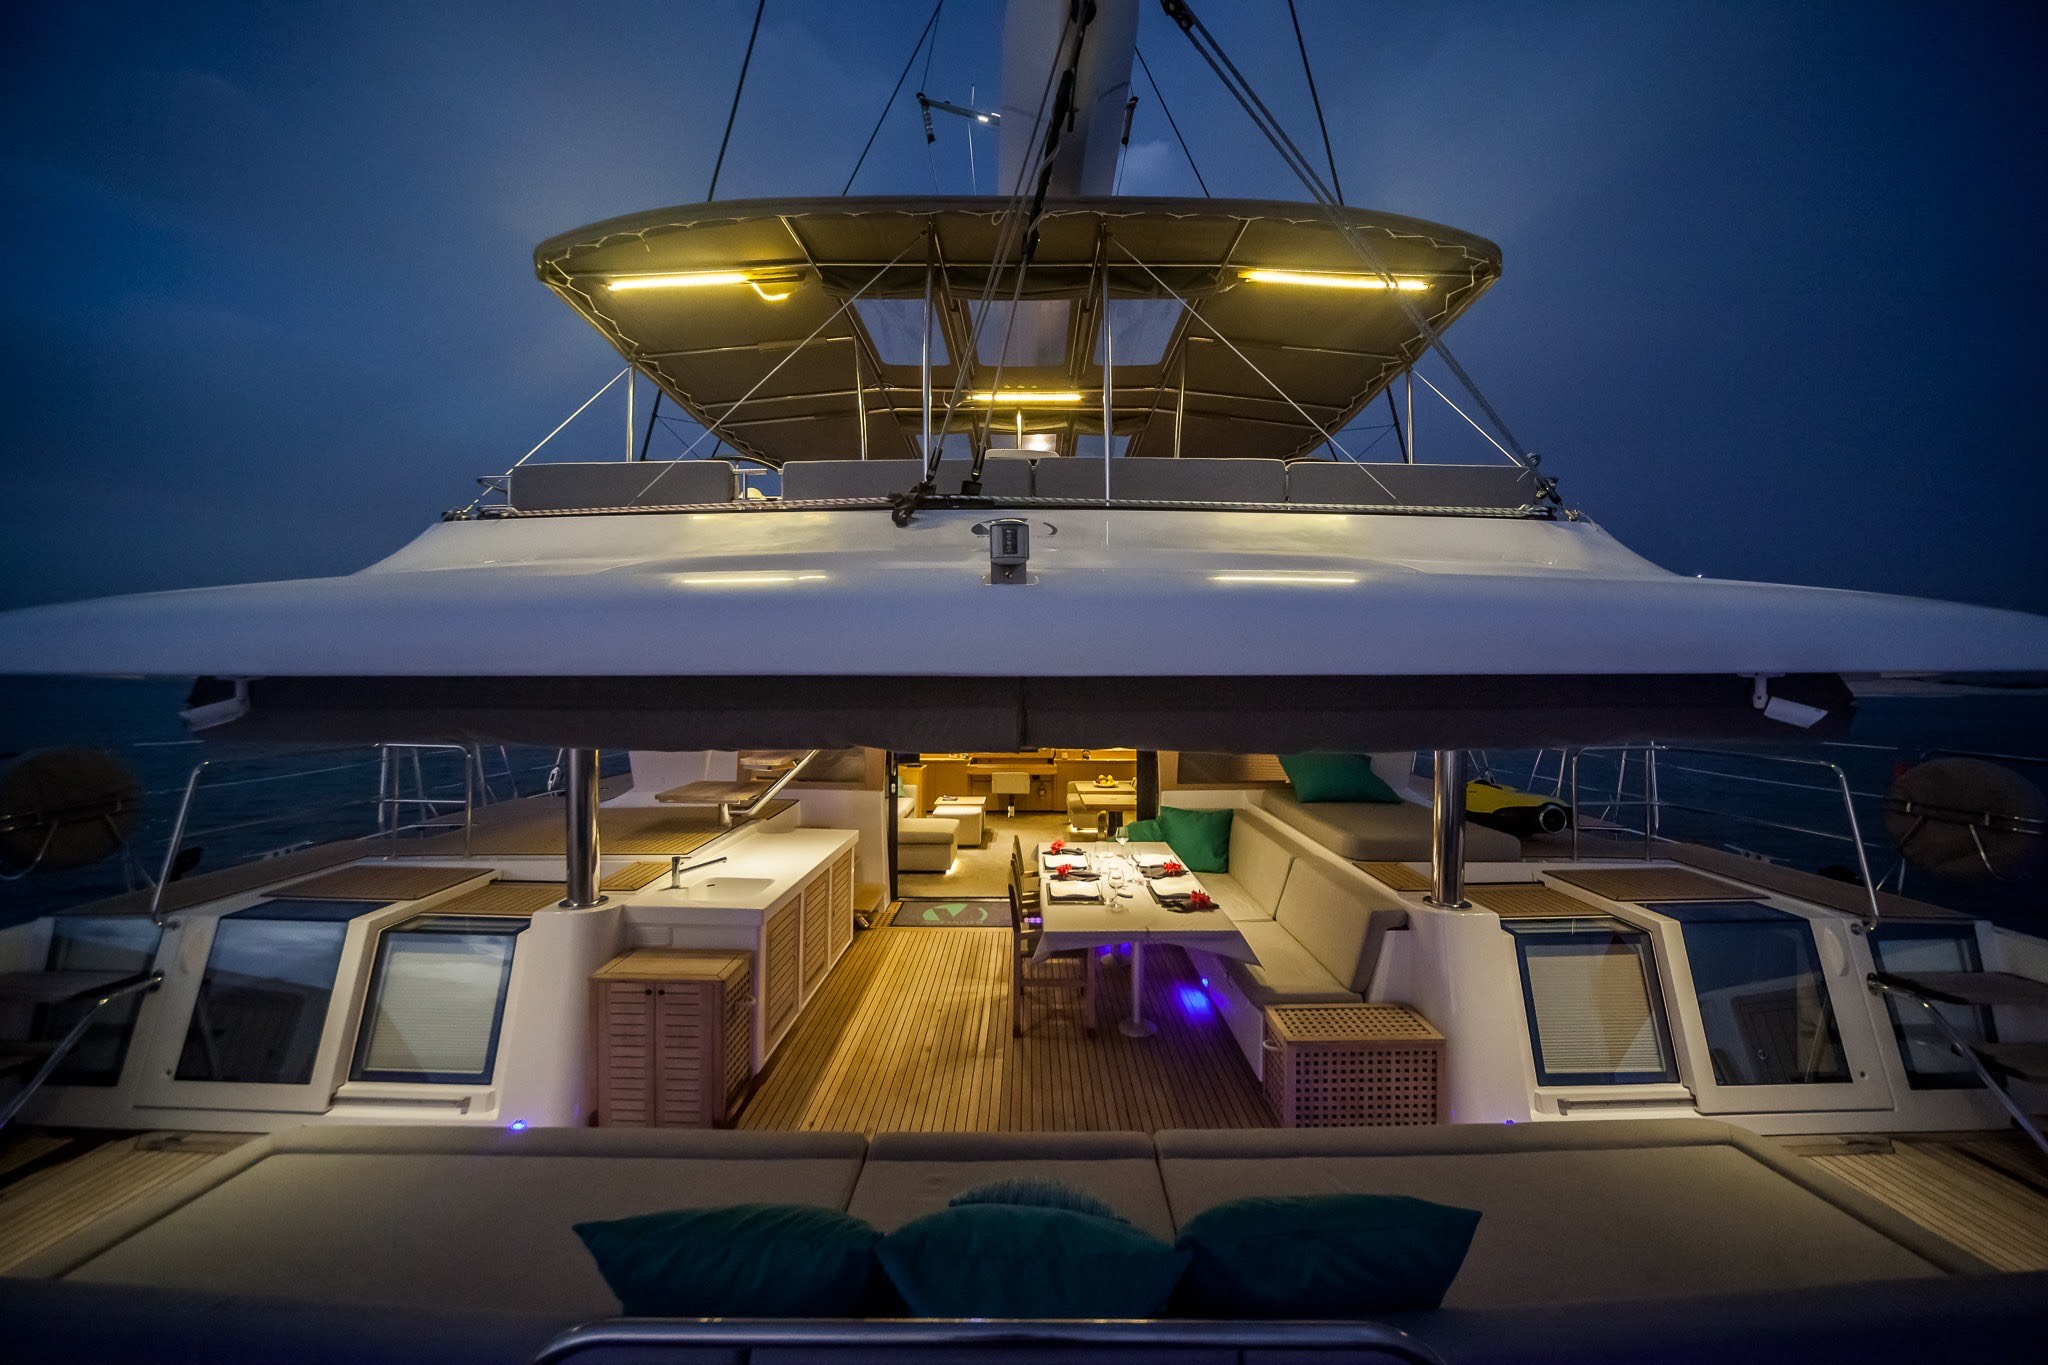 exterior deck areas in the evening